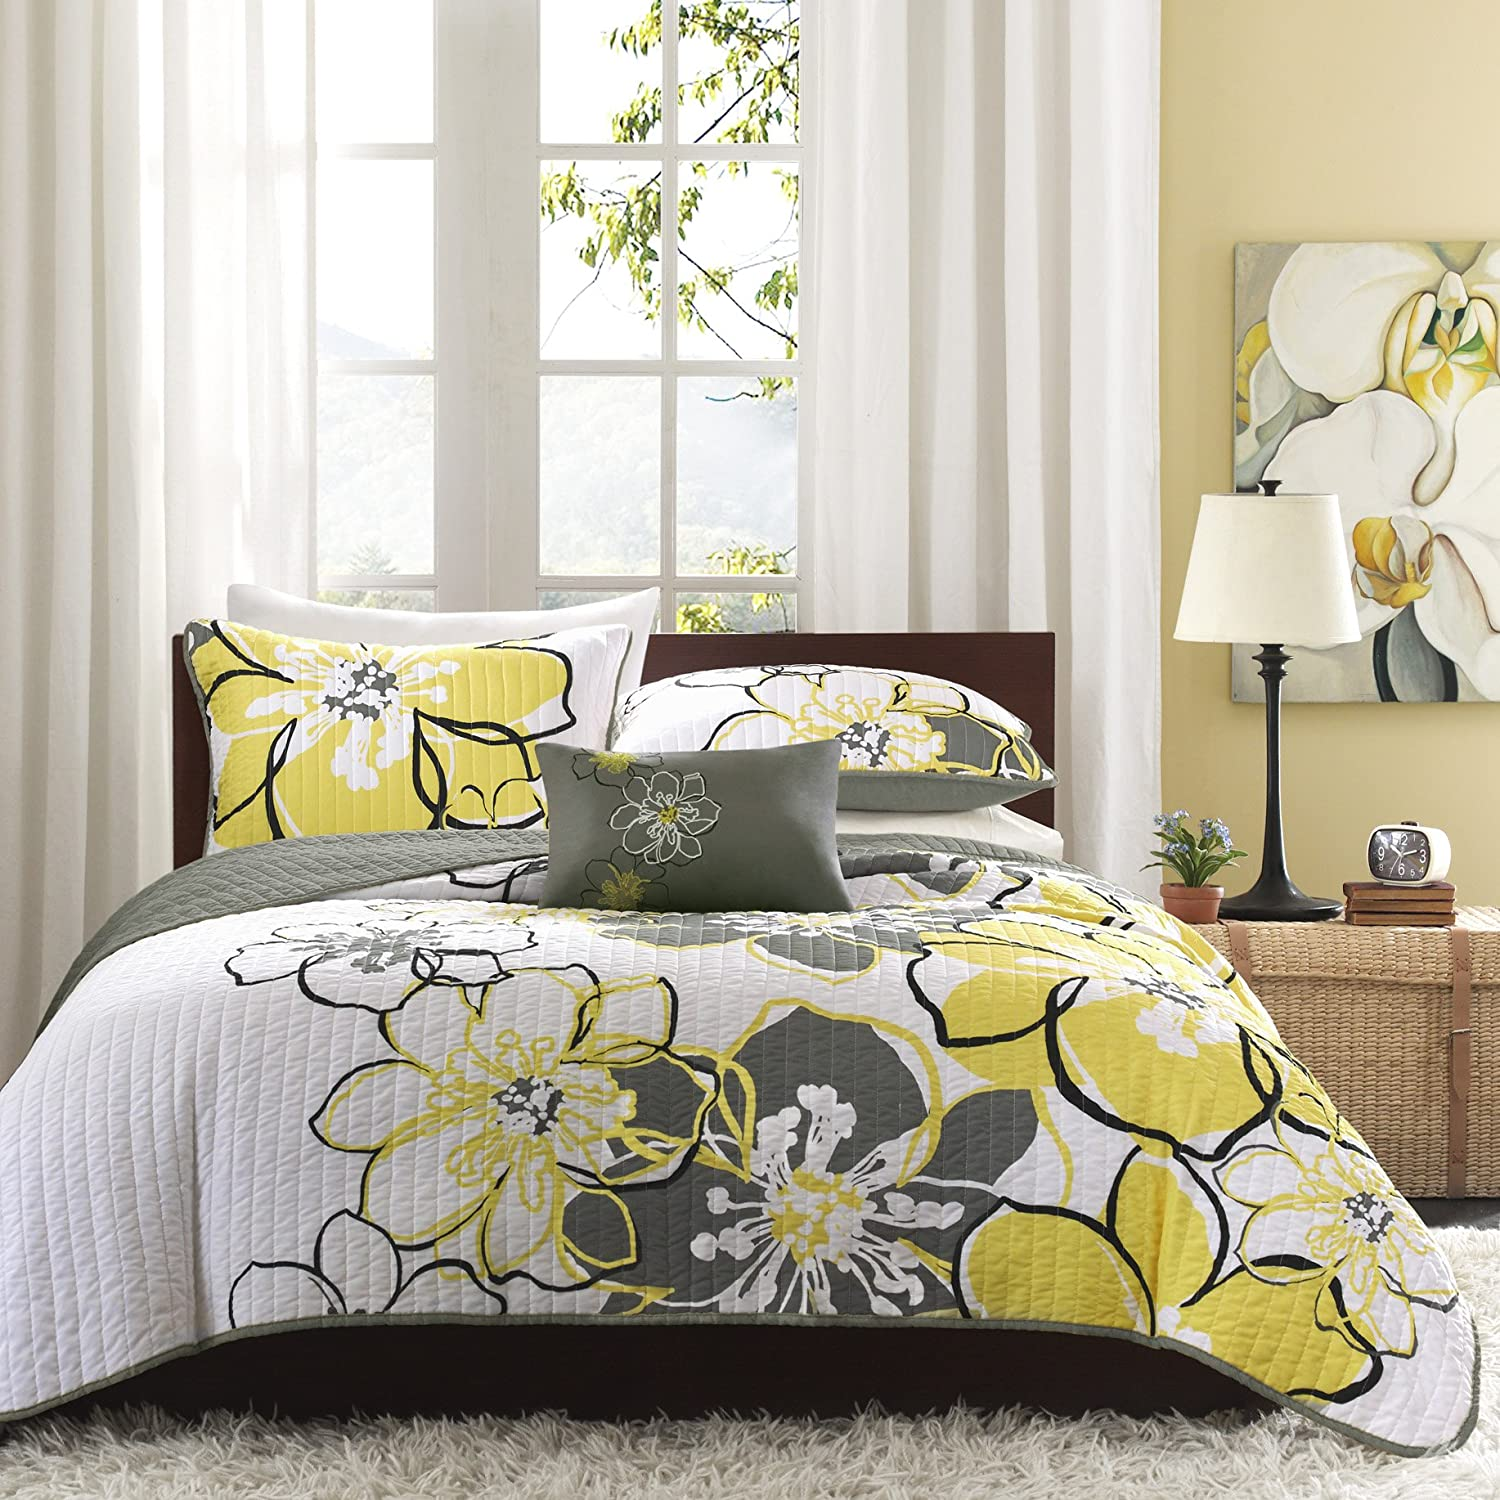 cache bed media grey of remodelling yellow made accessories bathroom size bedding is ss a decoration pinimg full nice on and gray property home